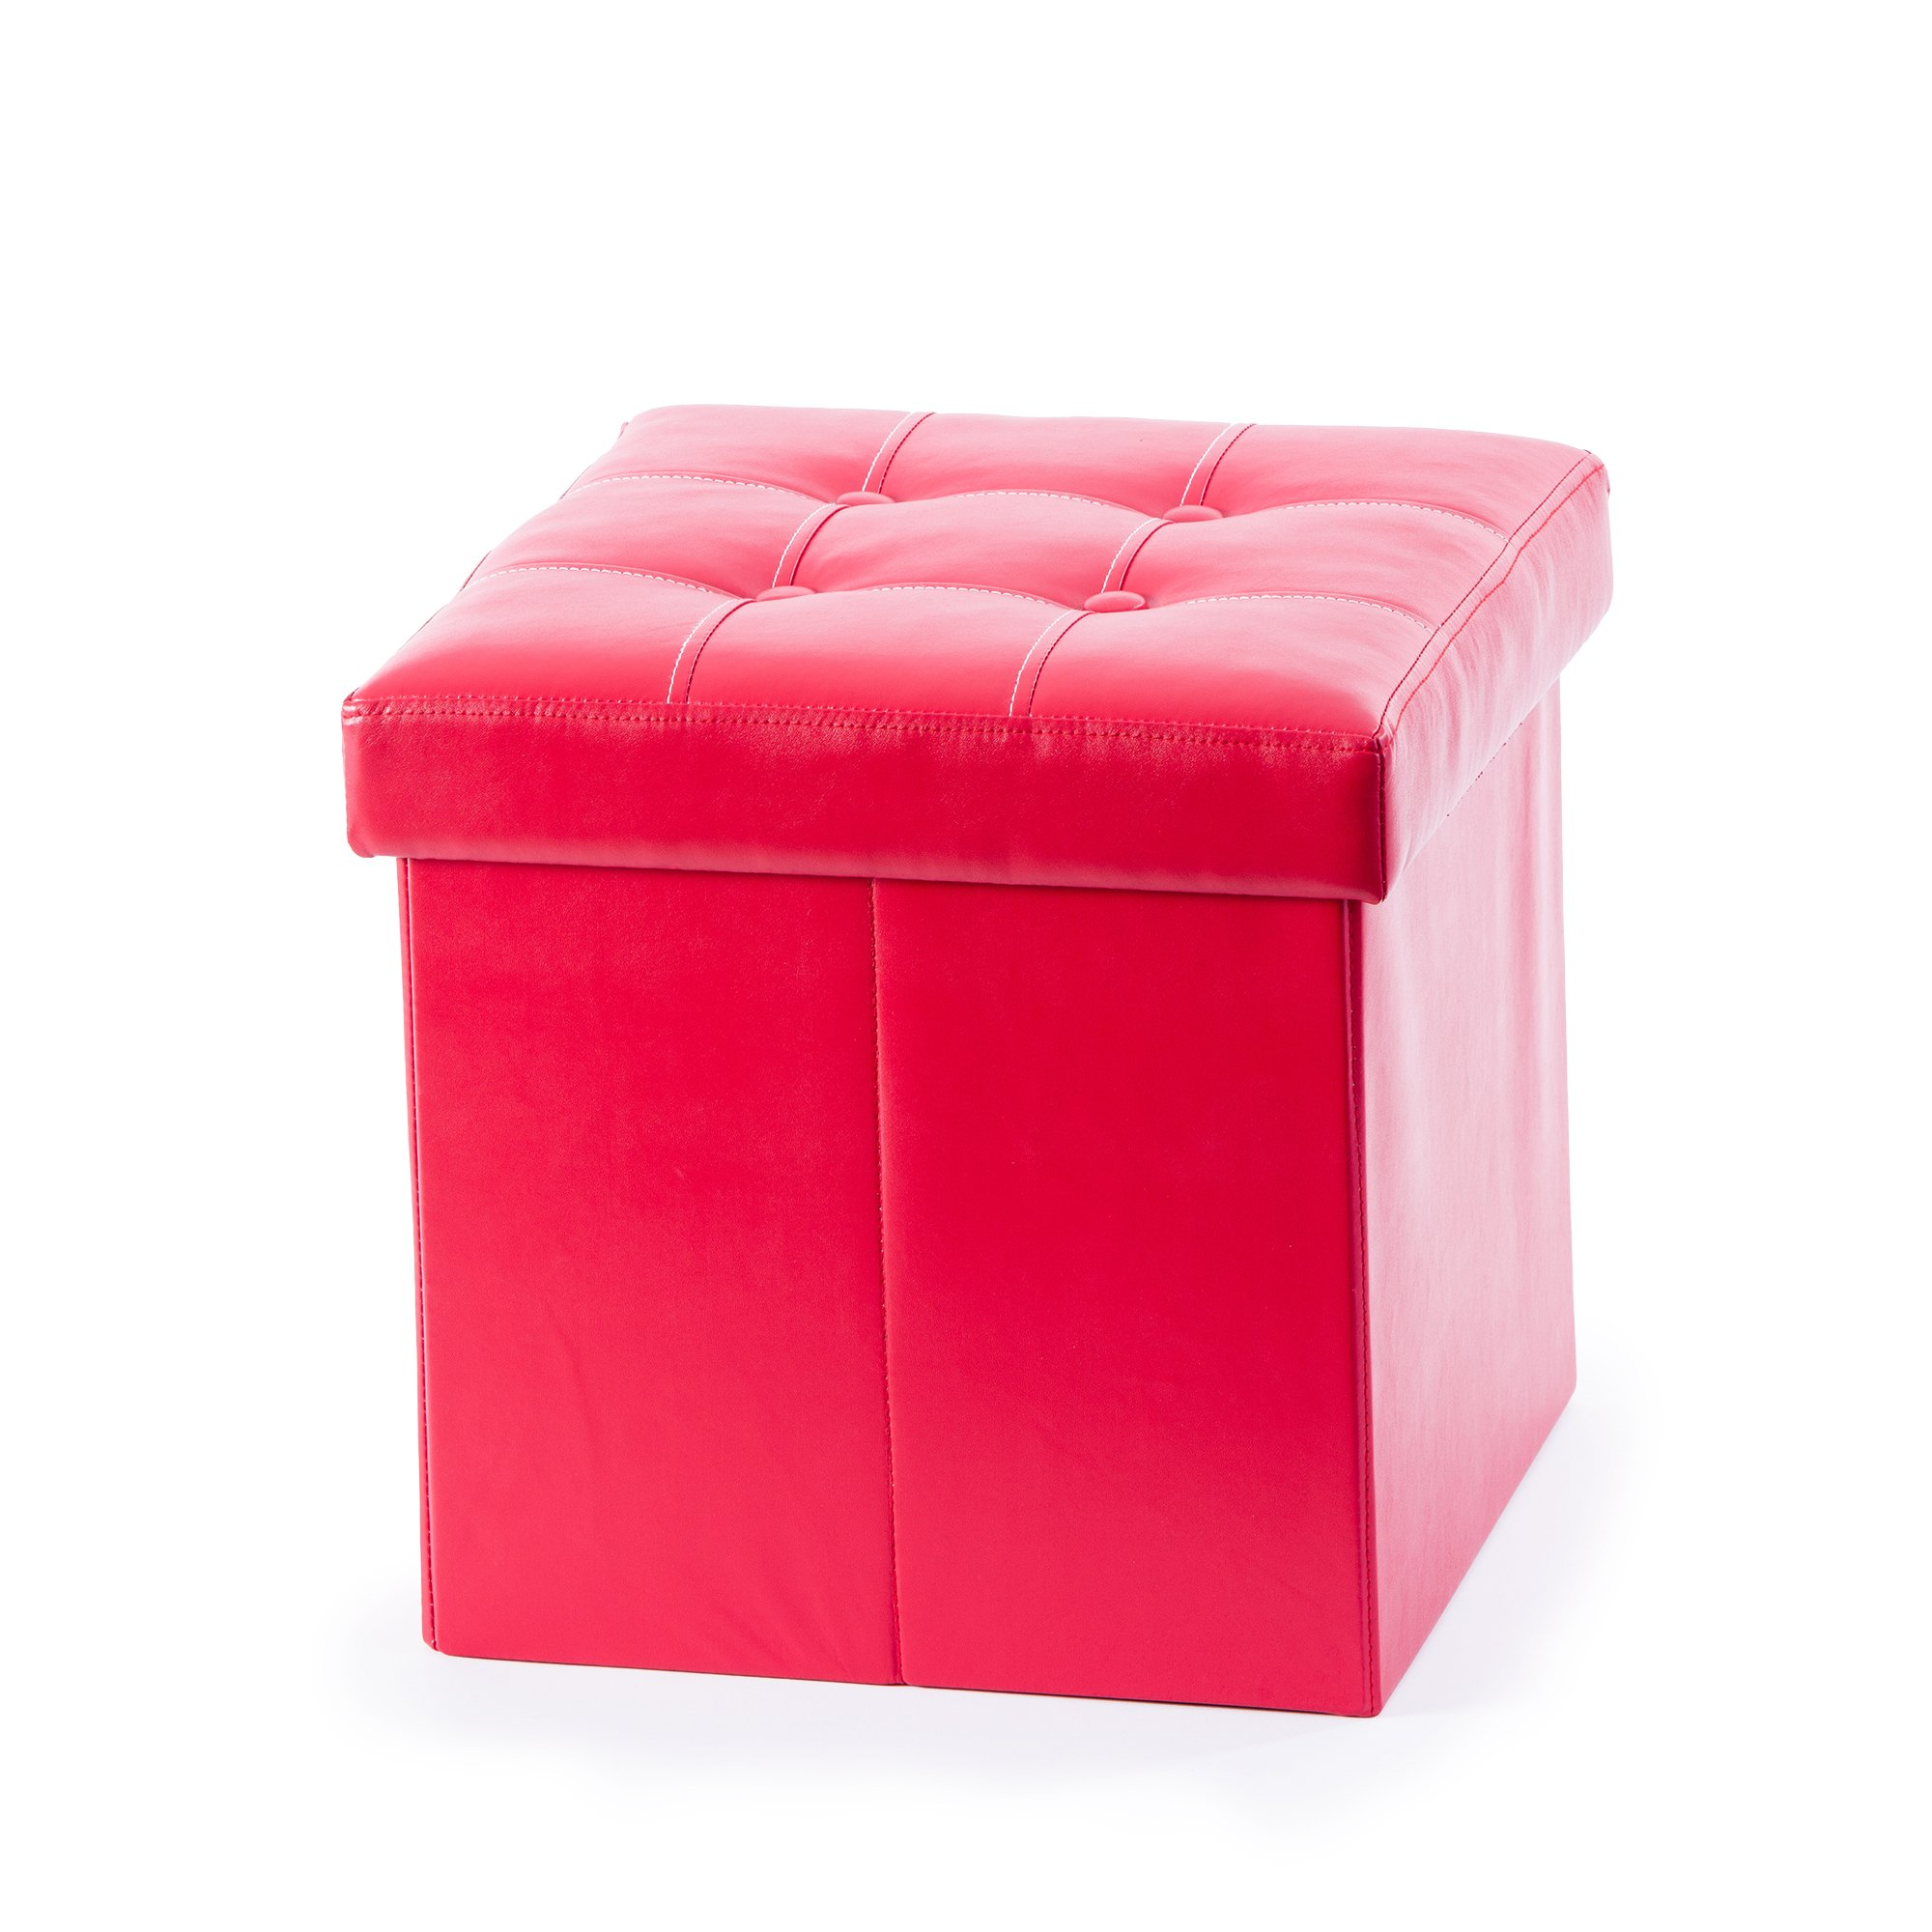 Guidecraft Storage Ottoman Red - Chest with Removable Top Cushion, Kids Seat and Foot Rest Stool Toy Box, Children's Furniture by Guidecraft